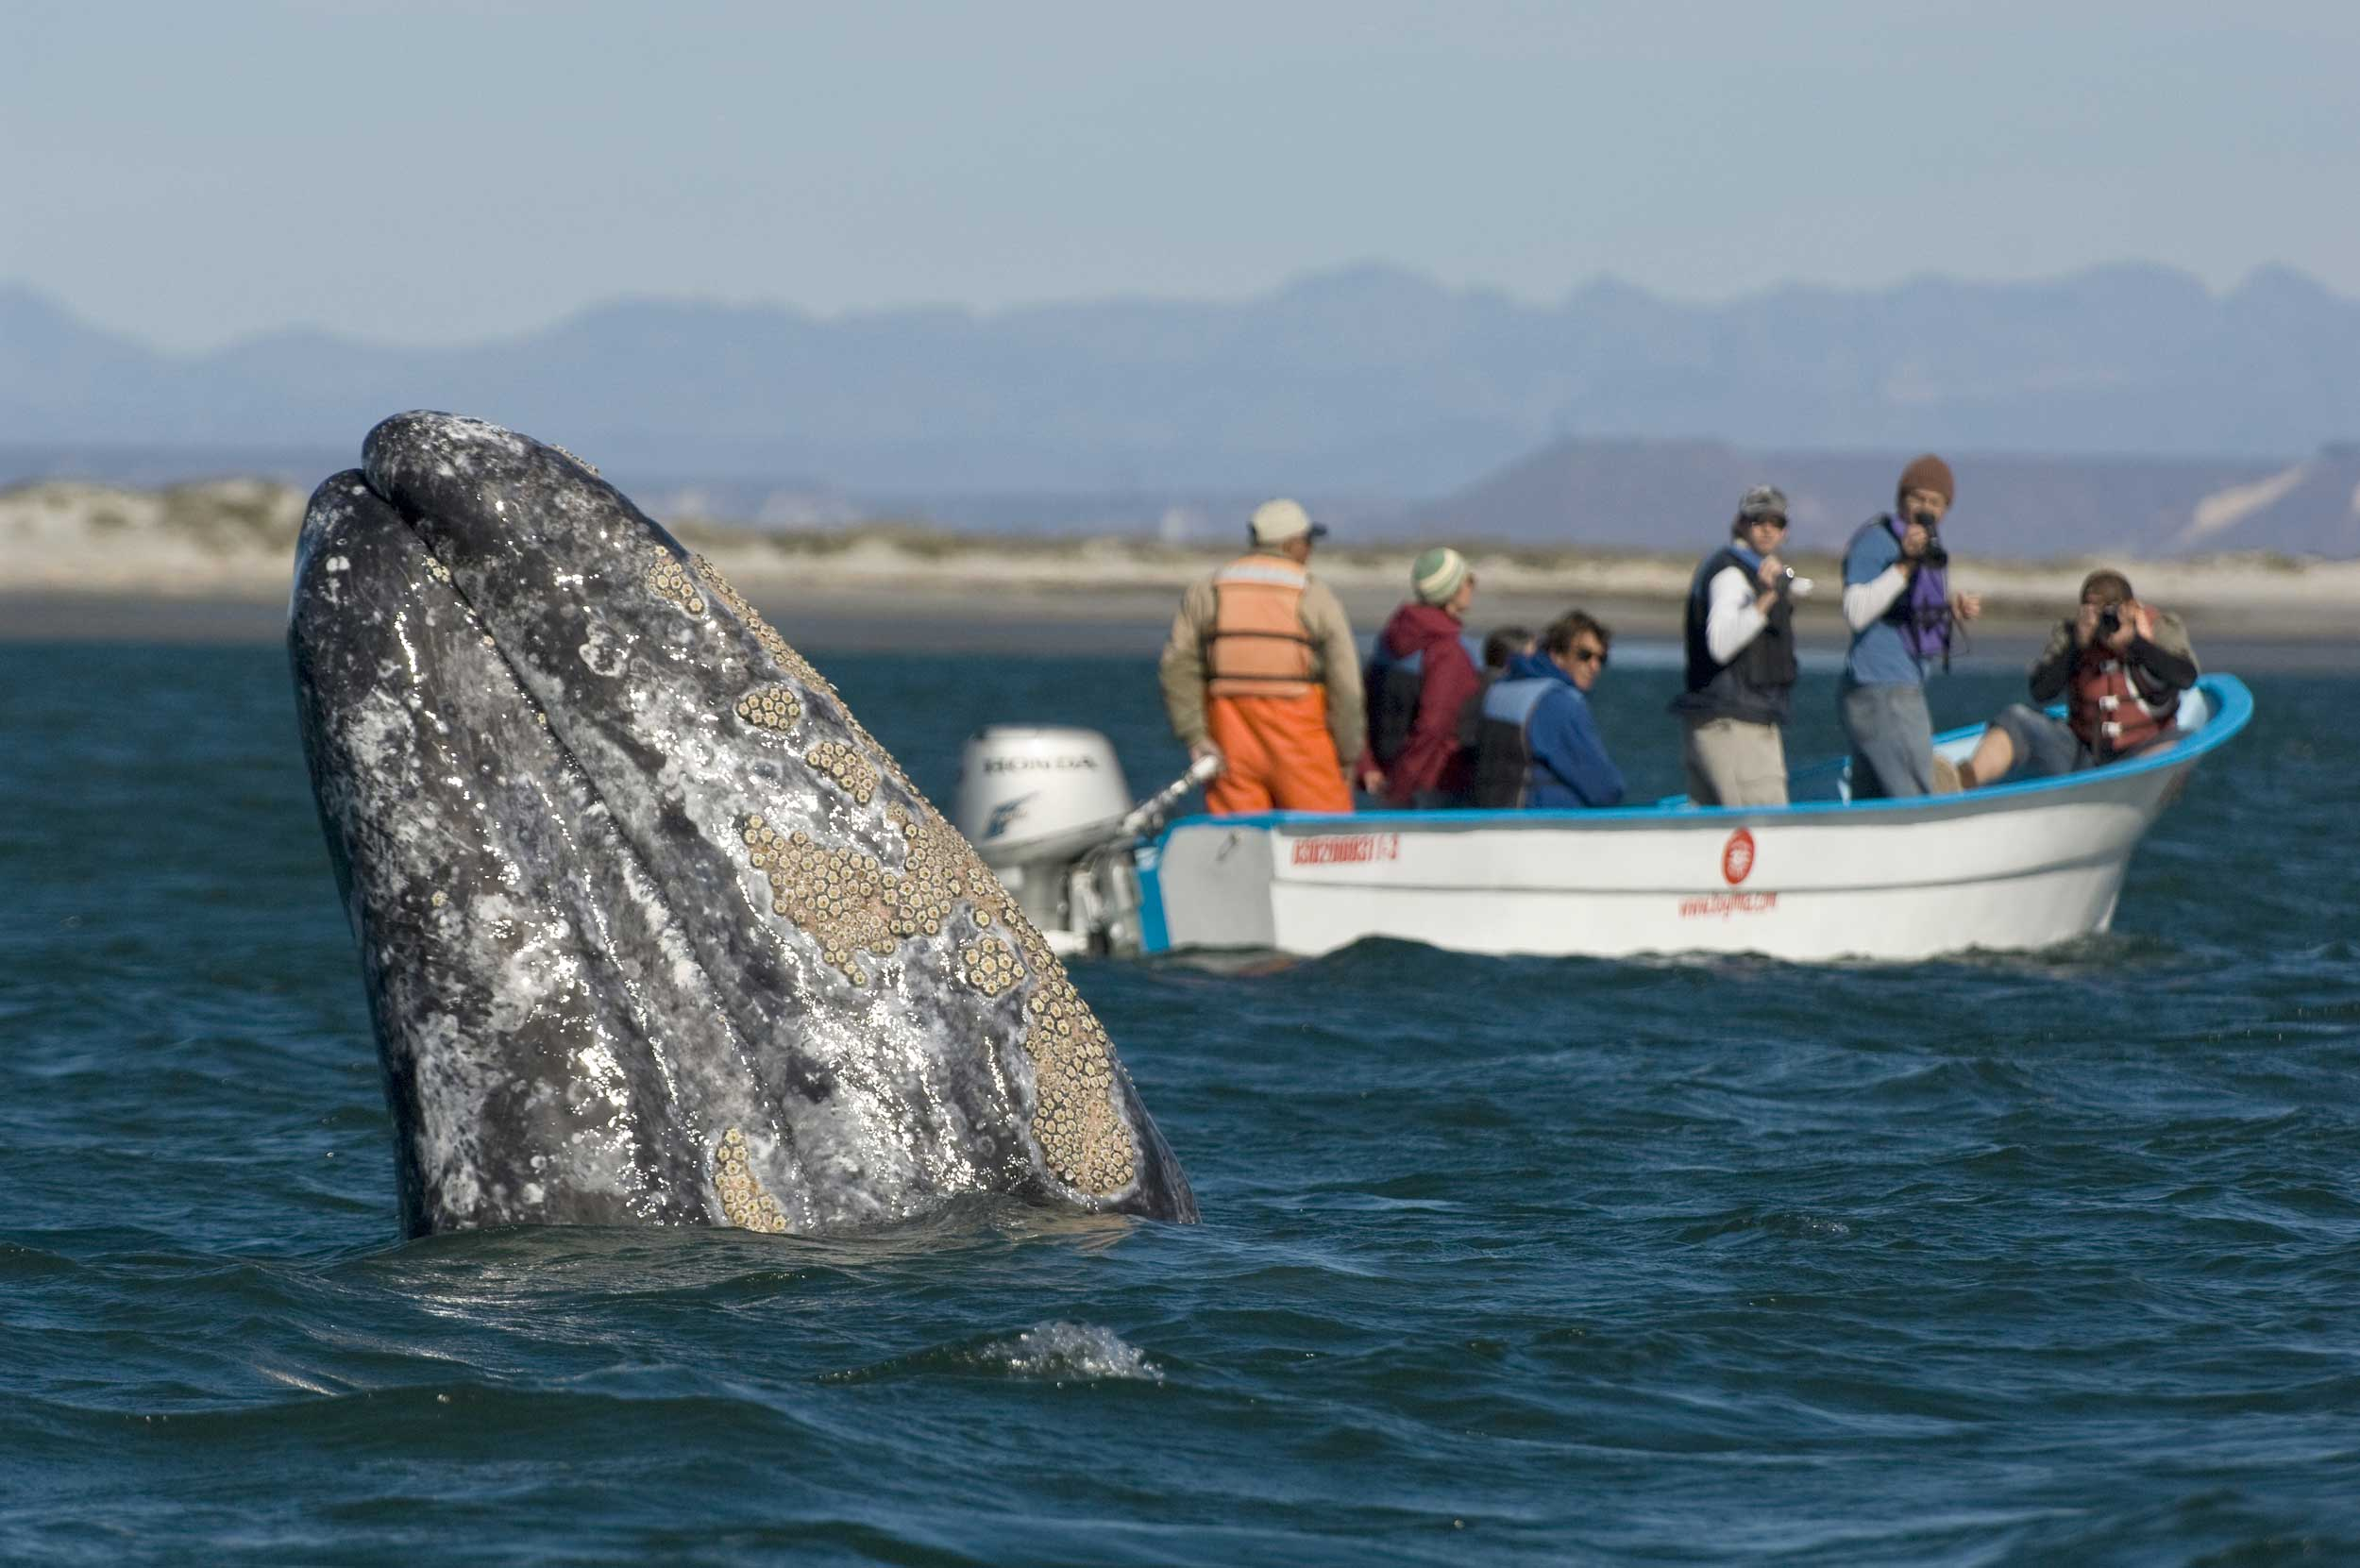 A barnacle crusted whale snout with a boat load of tourists in the background